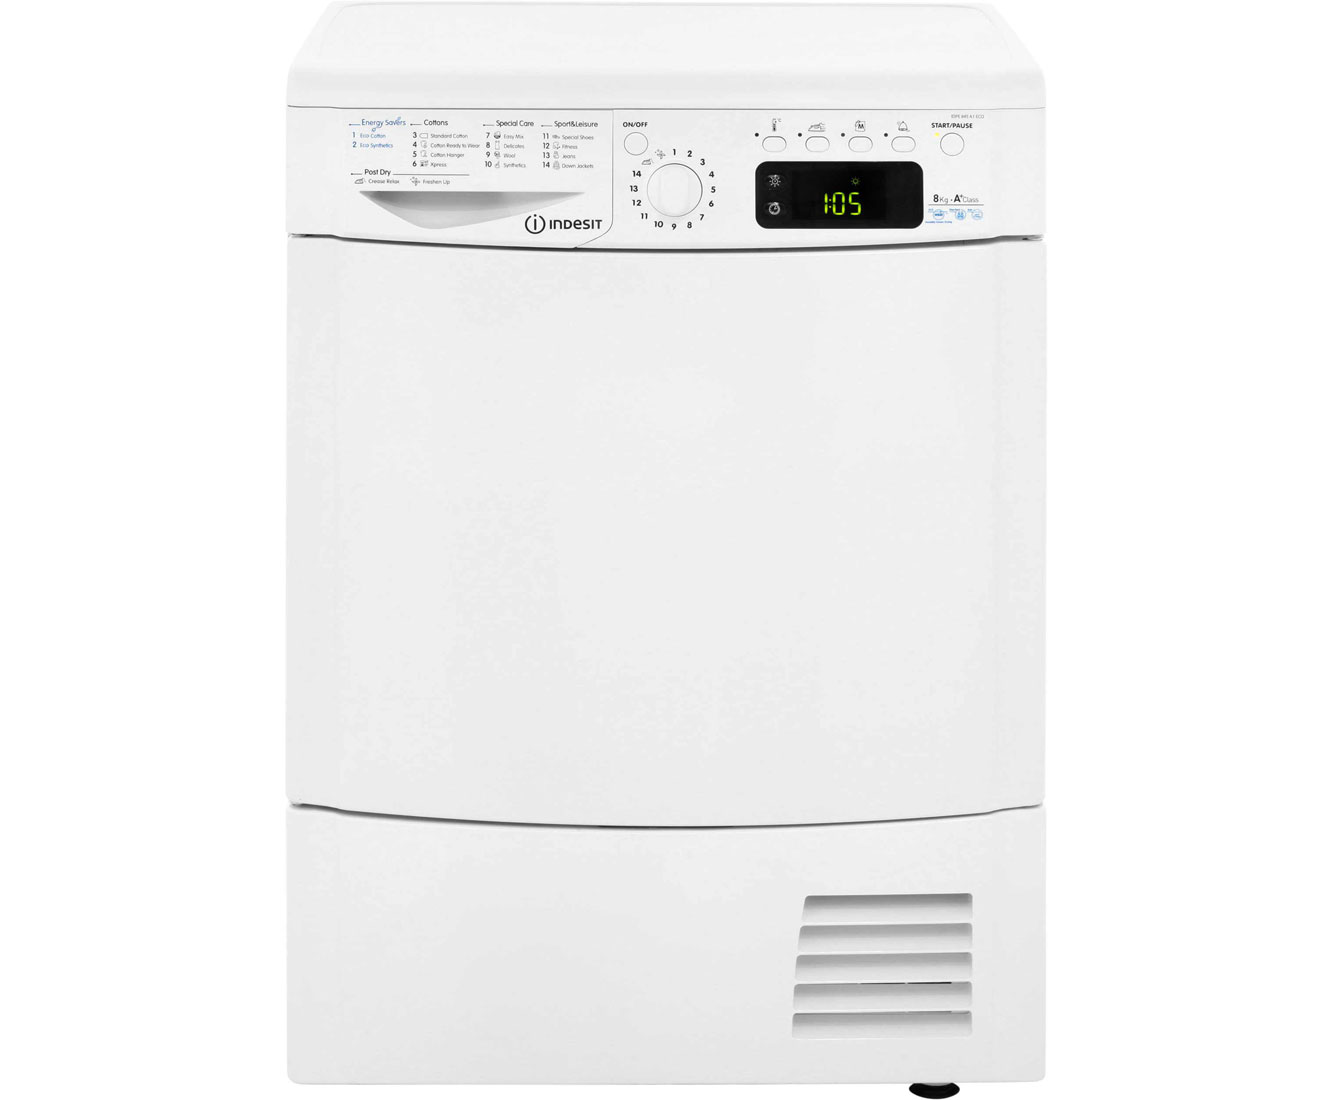 Indesit IDPE845A Heat Pump Tumble Dryer - White